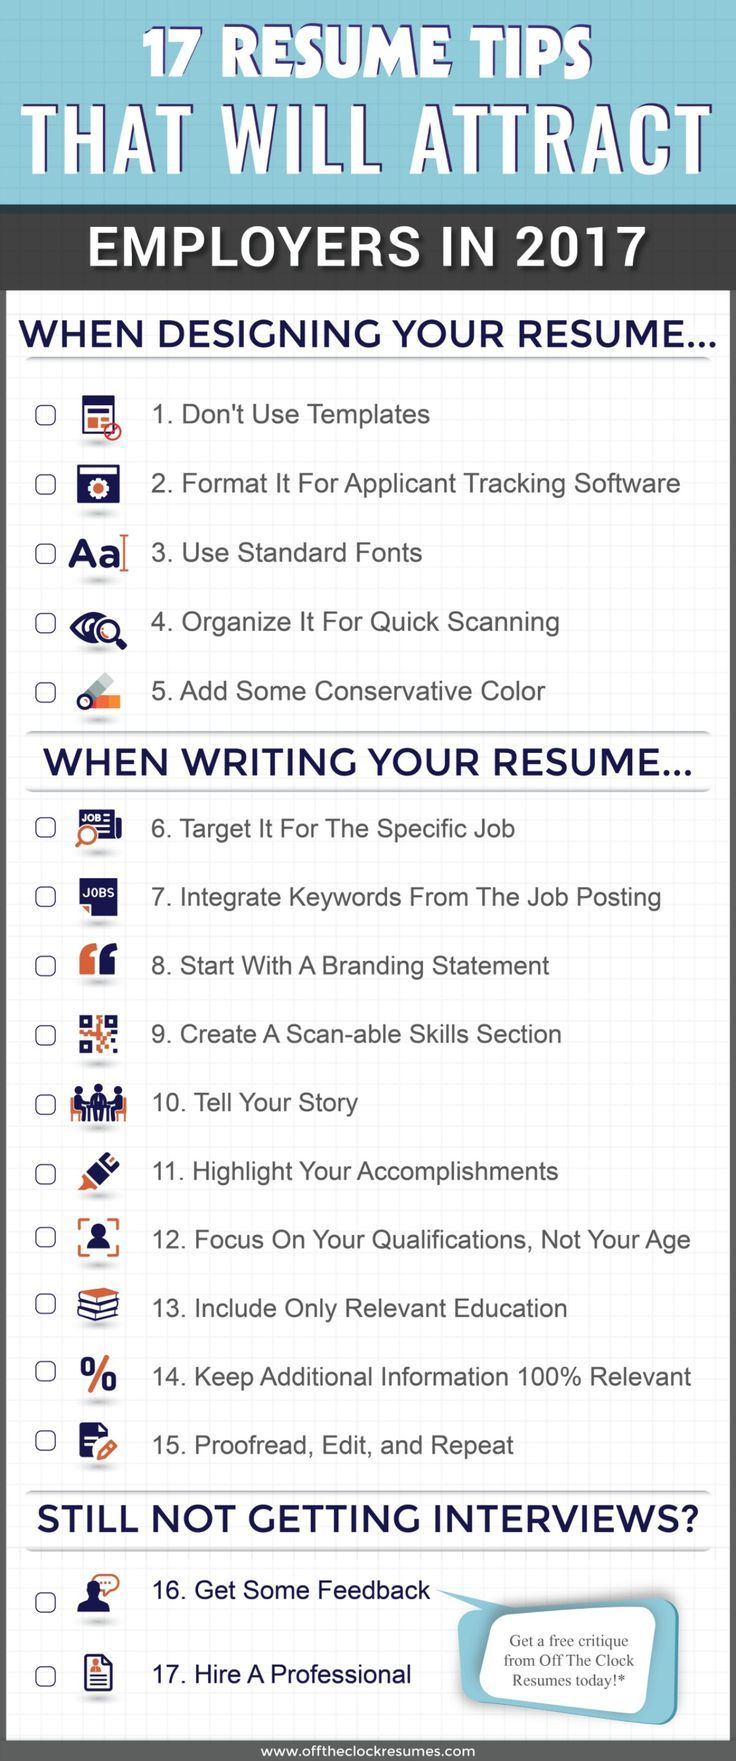 Resume Layout Tips Delectable 17 Resume Tips That Will Attract Employers In 2017 Infographic .